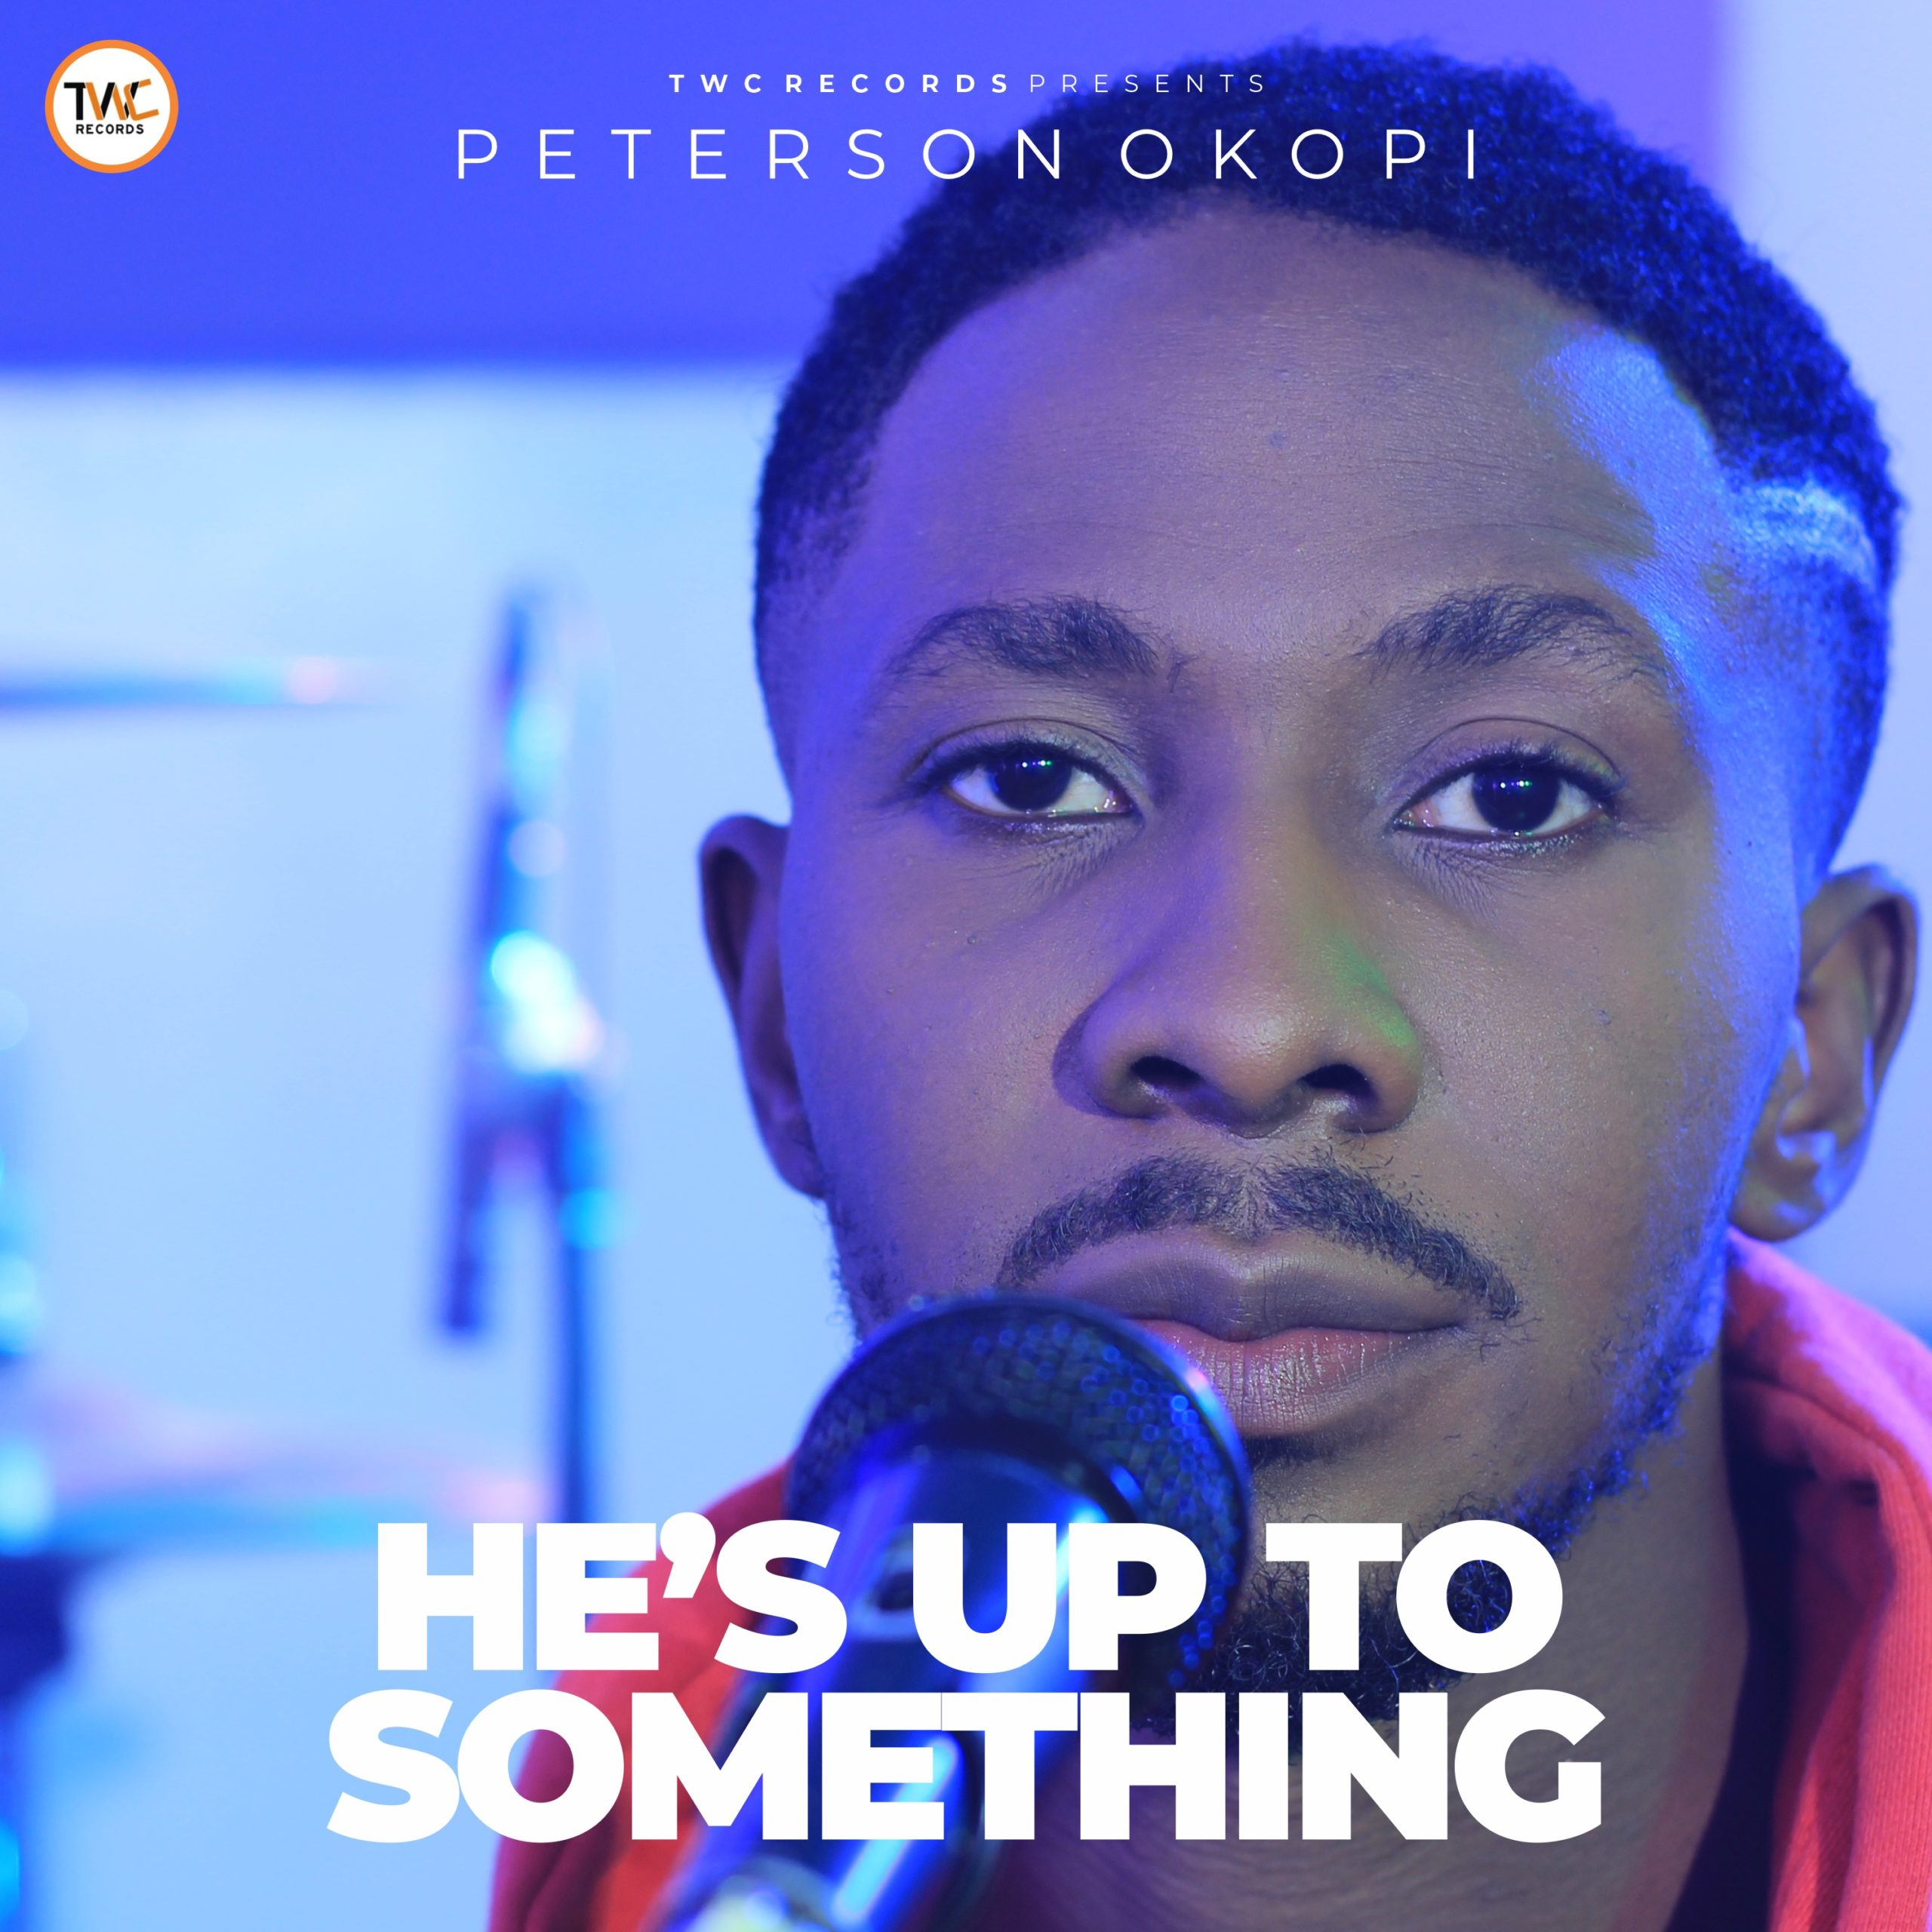 He's Up To Something - Peterson Okopi